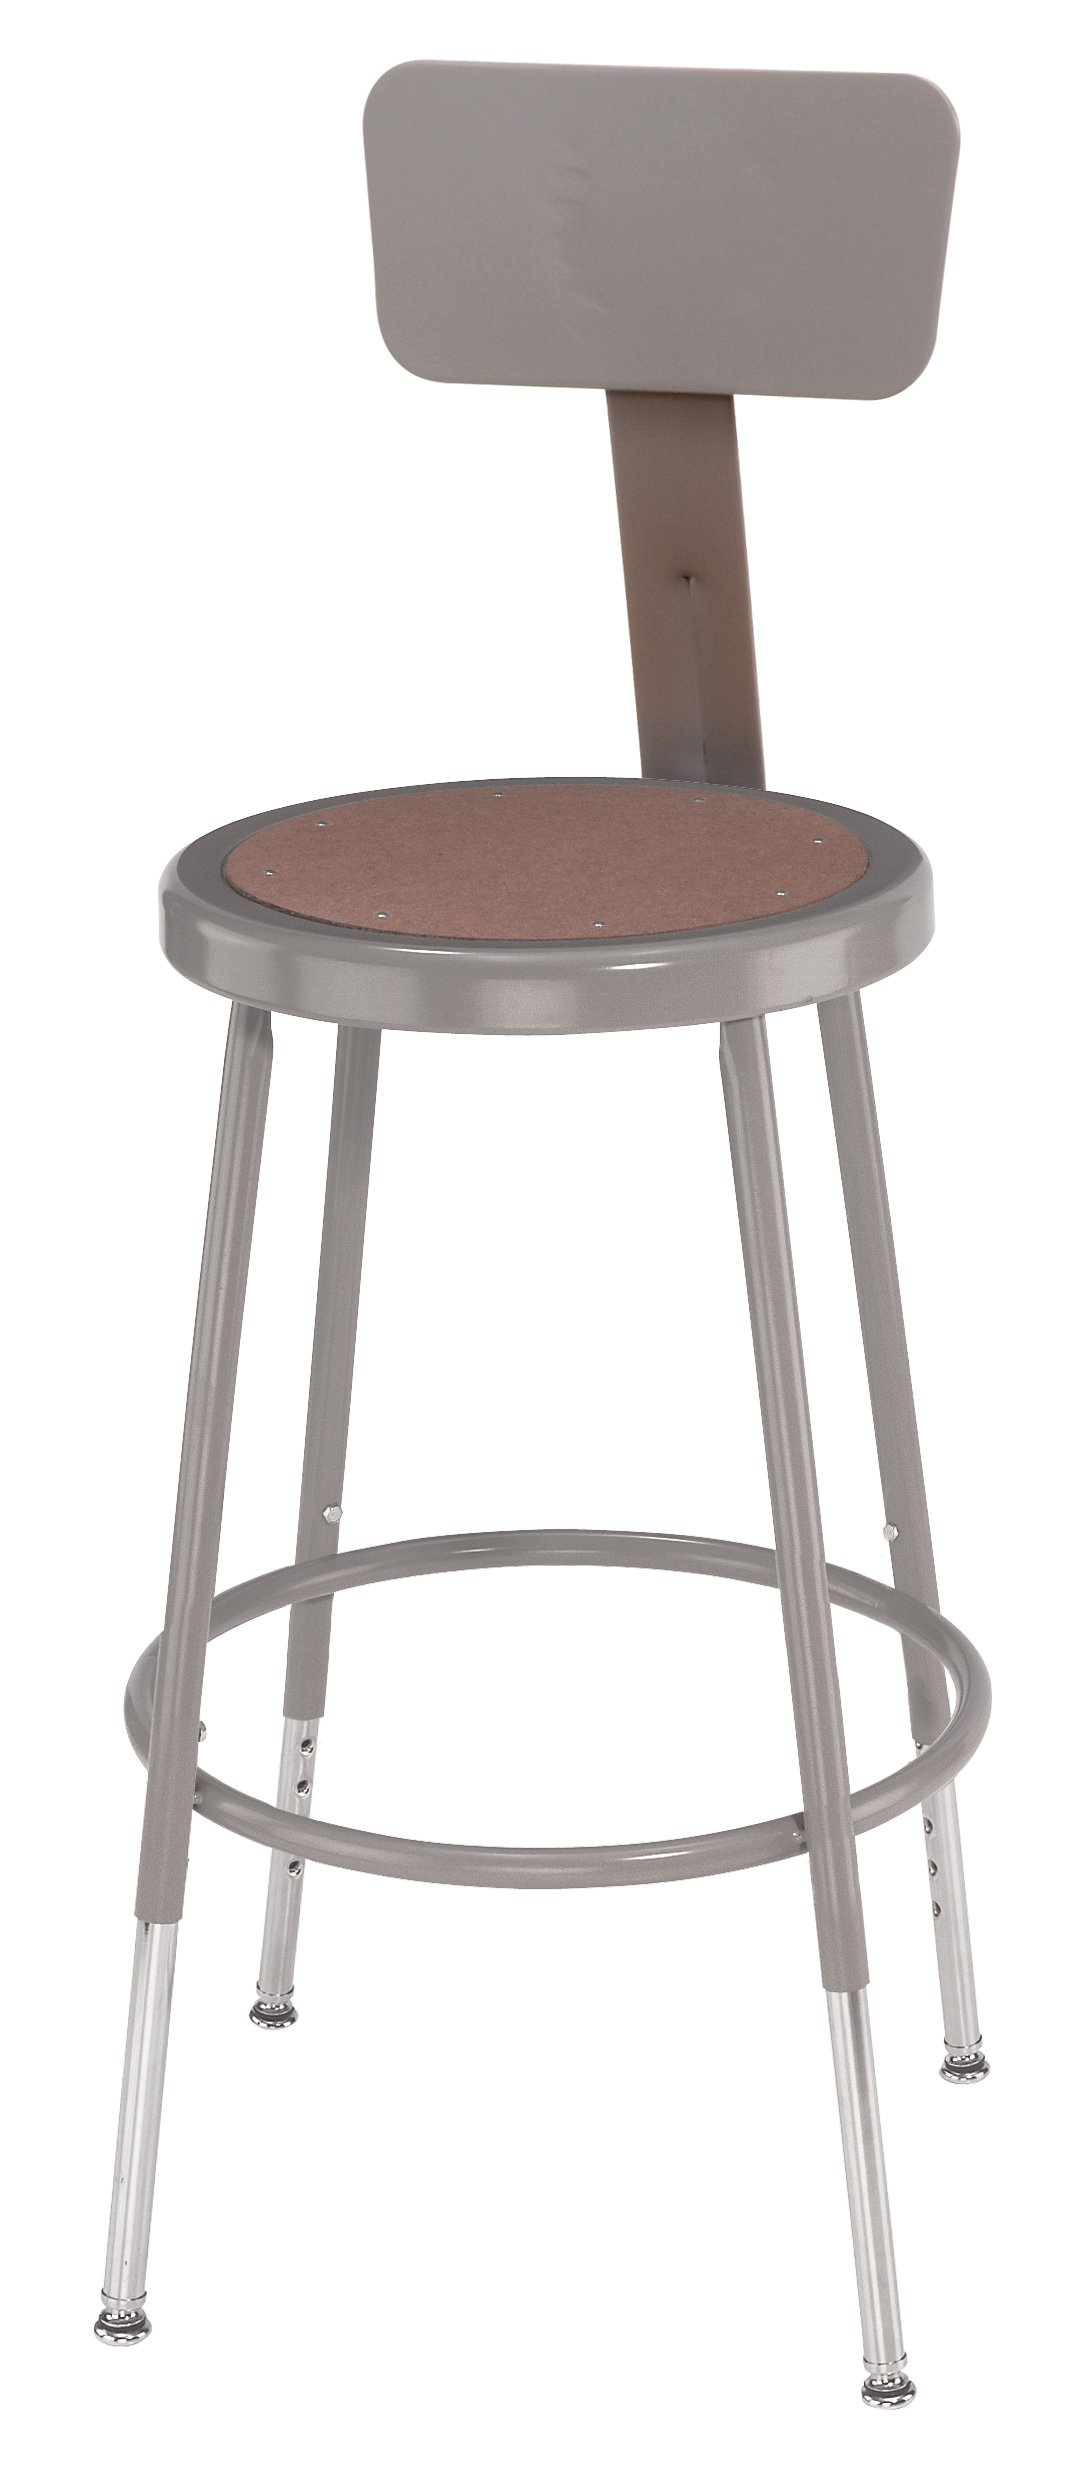 National Public Seating 6218HB-CN  Grey Steel Stool with Hardboard Seat Adjustable and Backrest, 19''-27'' (Pack of 5)